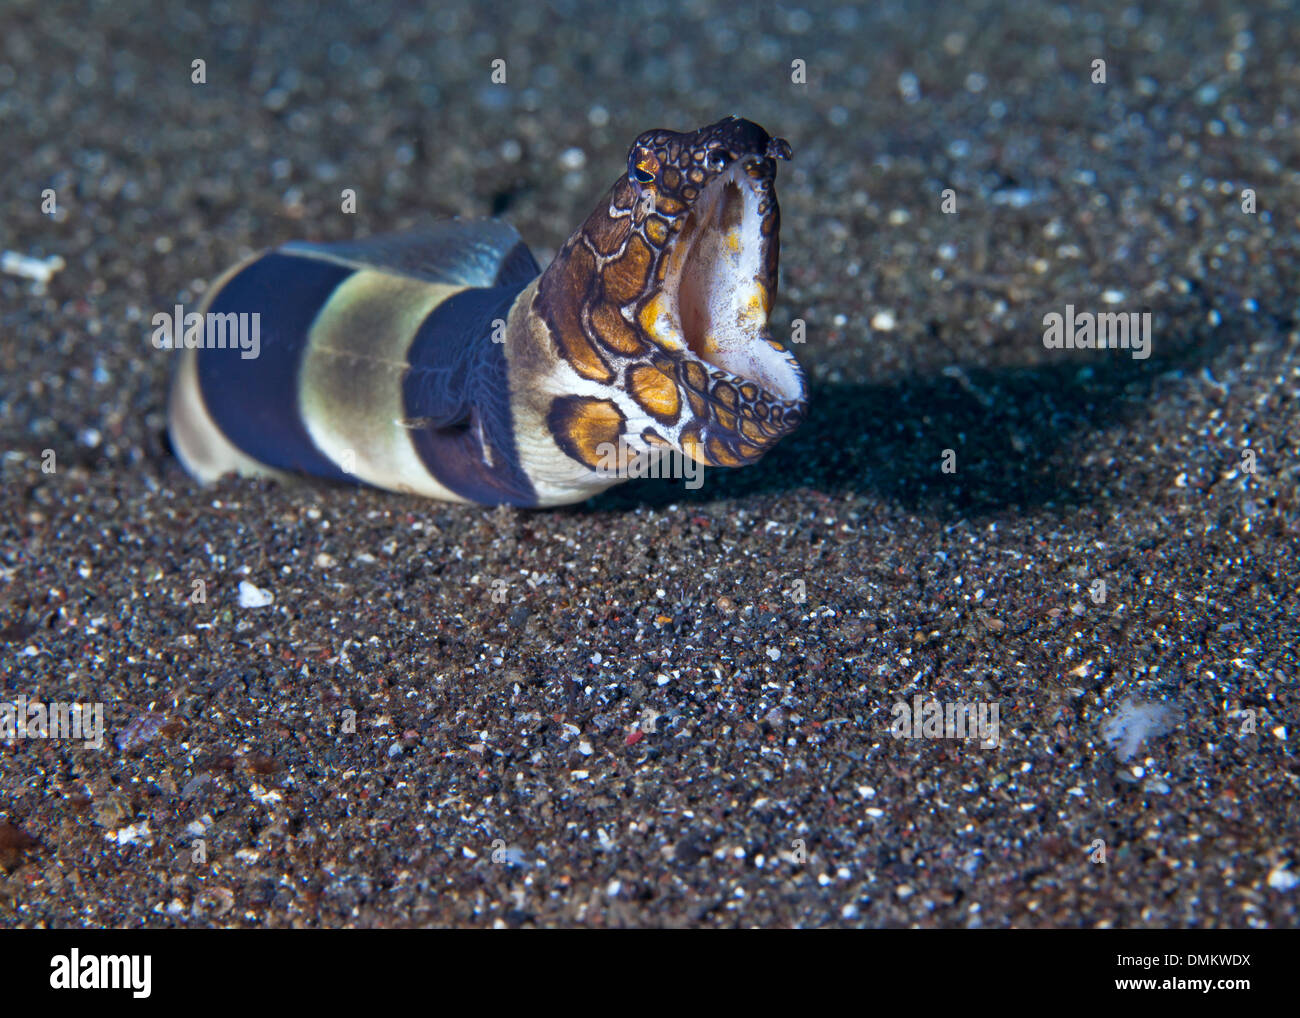 Clown snake eel ( Ophichthus bonaparti) lunges from its hole in sand and snarls at photographer. Lembeh Straits, Indonesia. - Stock Image